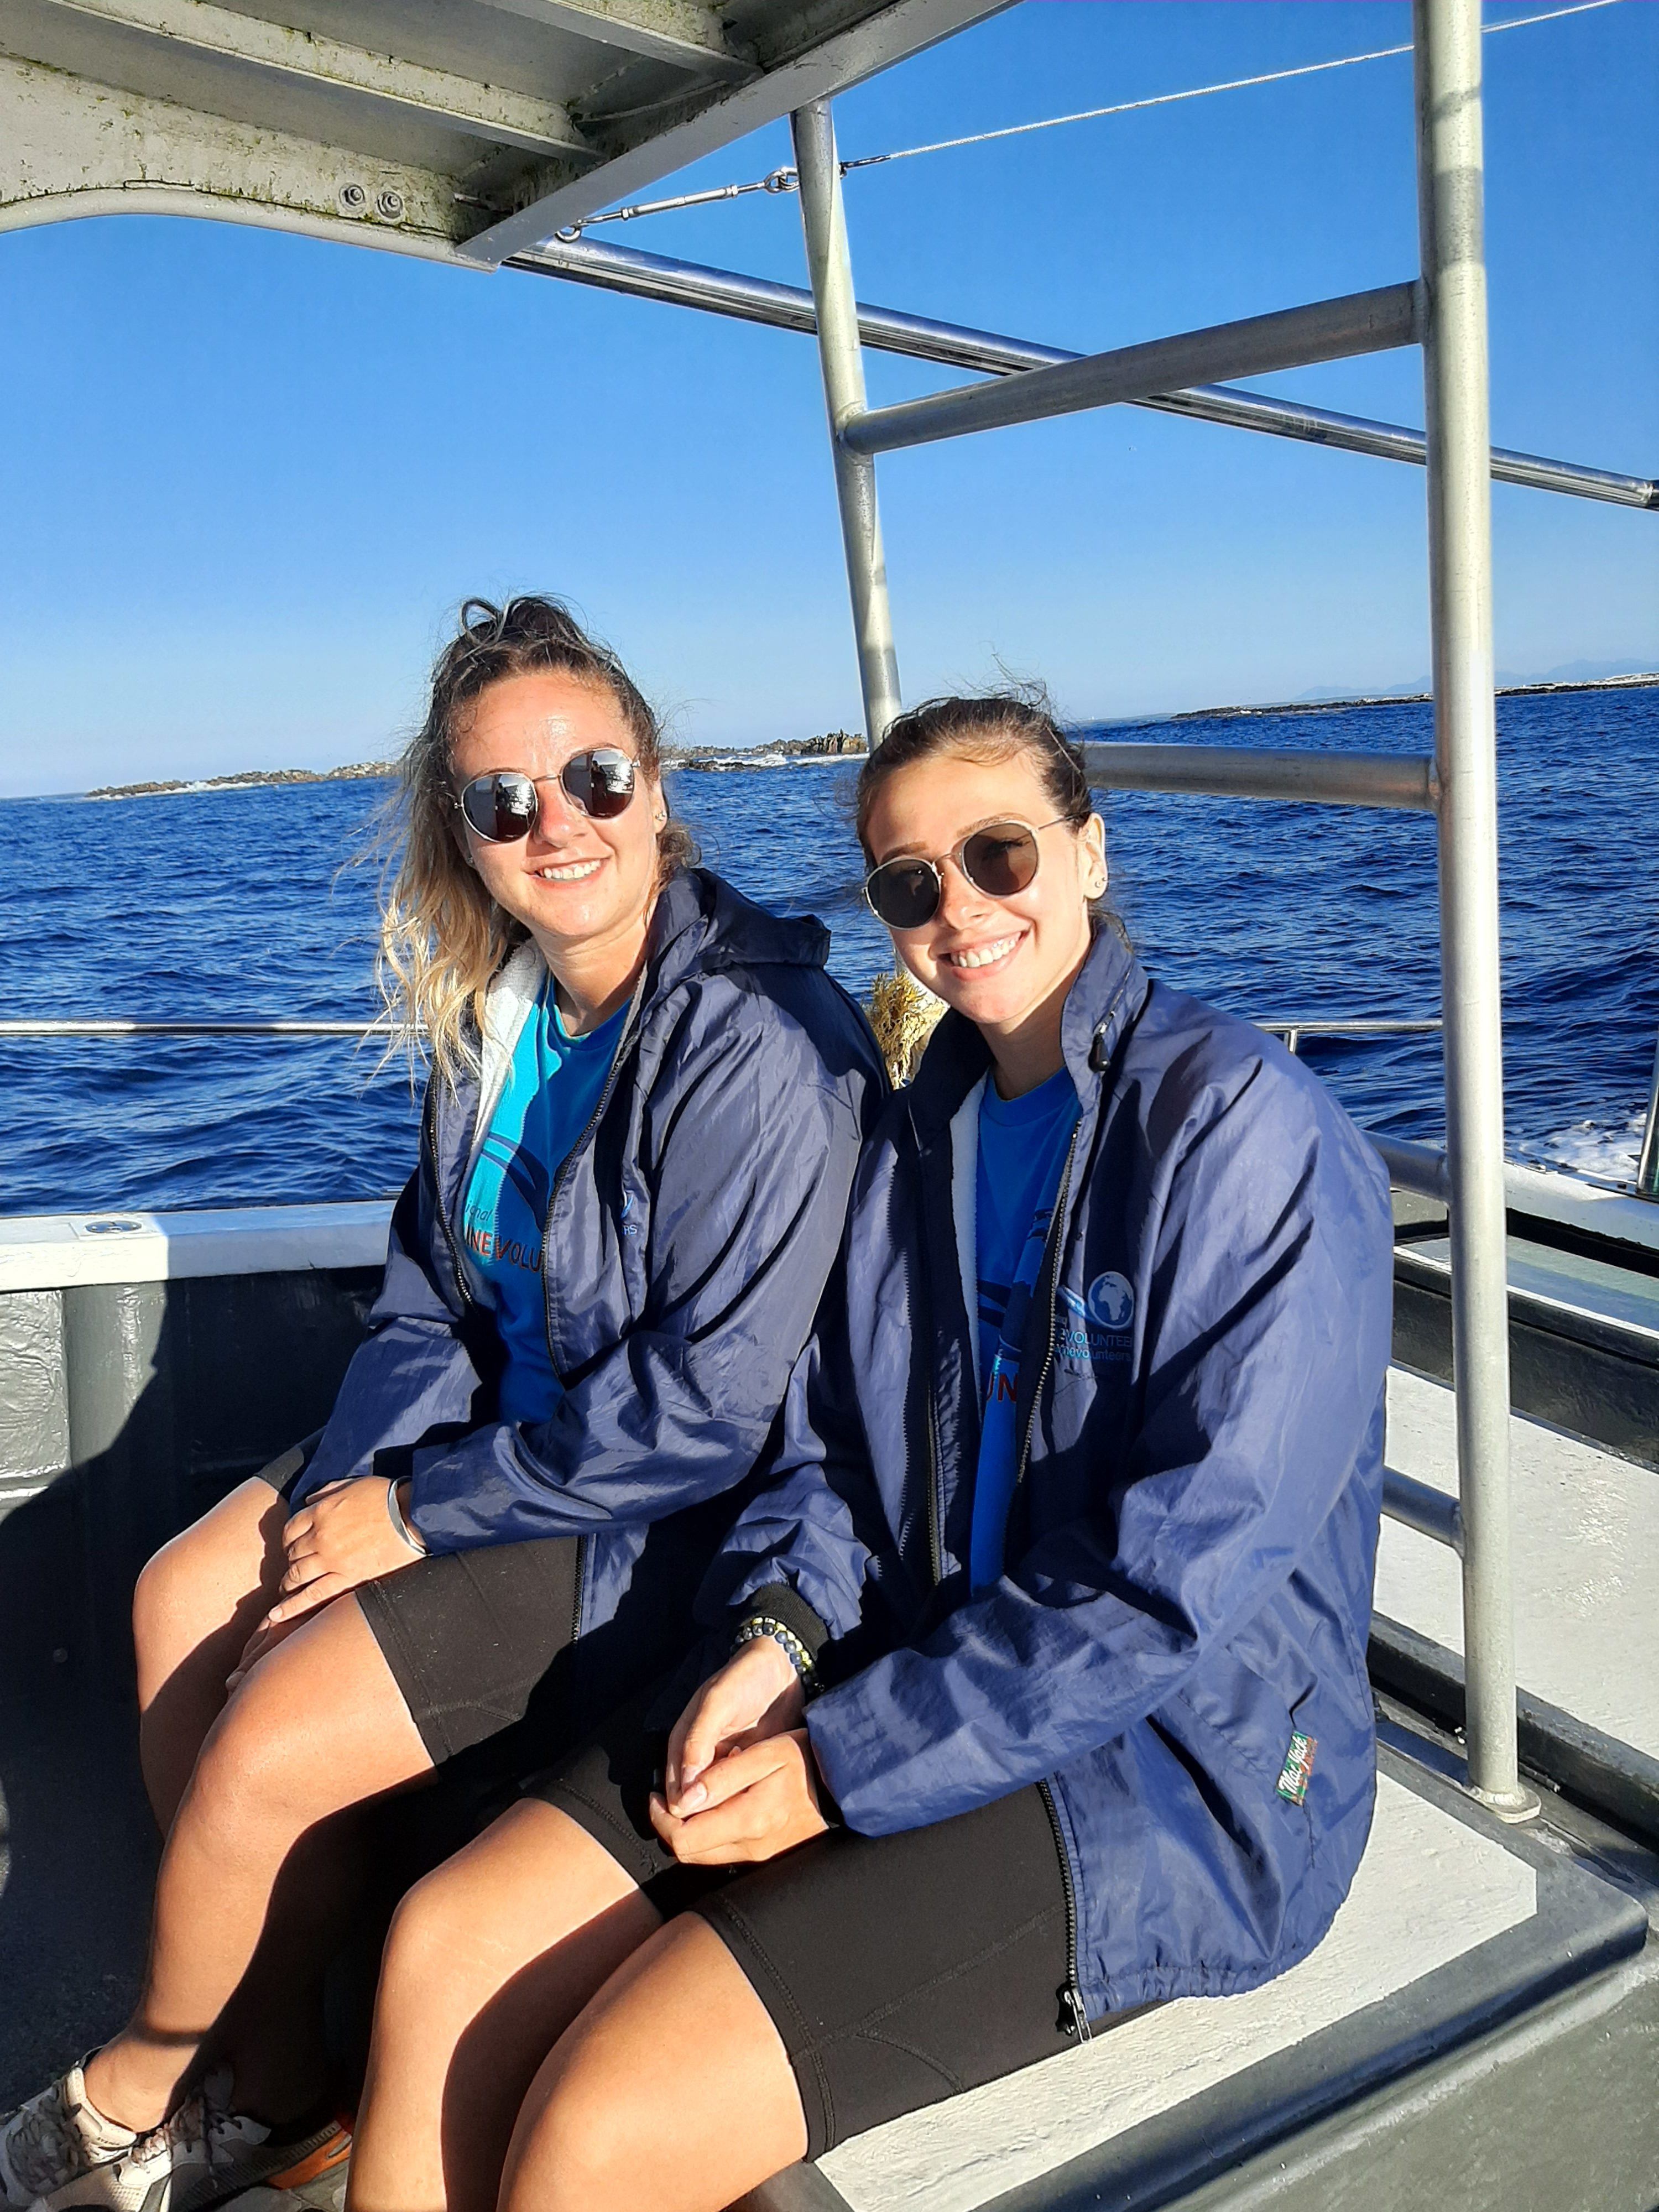 Volunteering sister duo shares their experience at the Marine Dynamics Academy